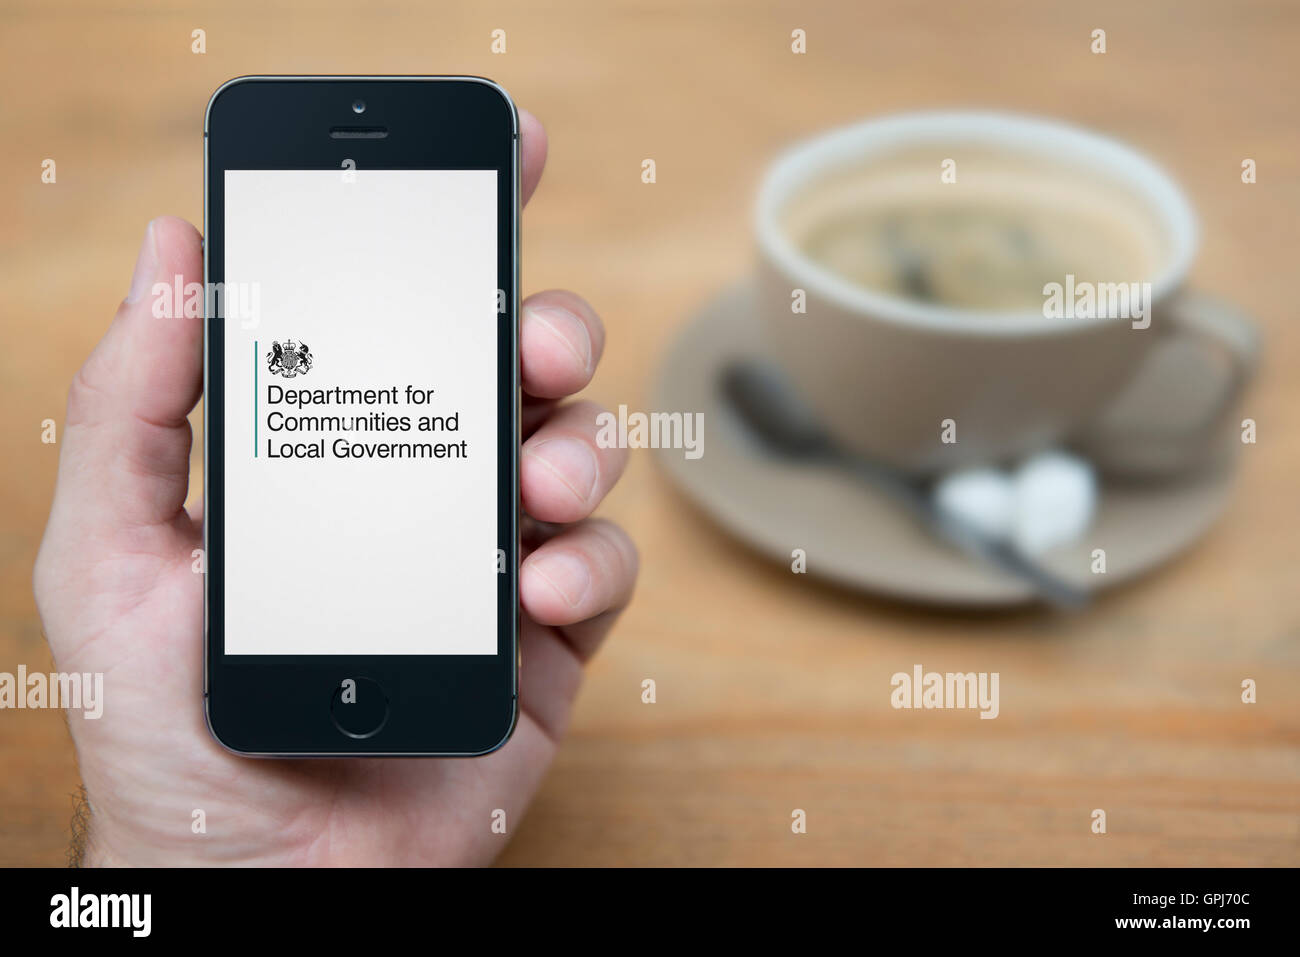 A man looks at his iPhone which displays the Department for Communities and Local Government logo (Editorial use - Stock Image